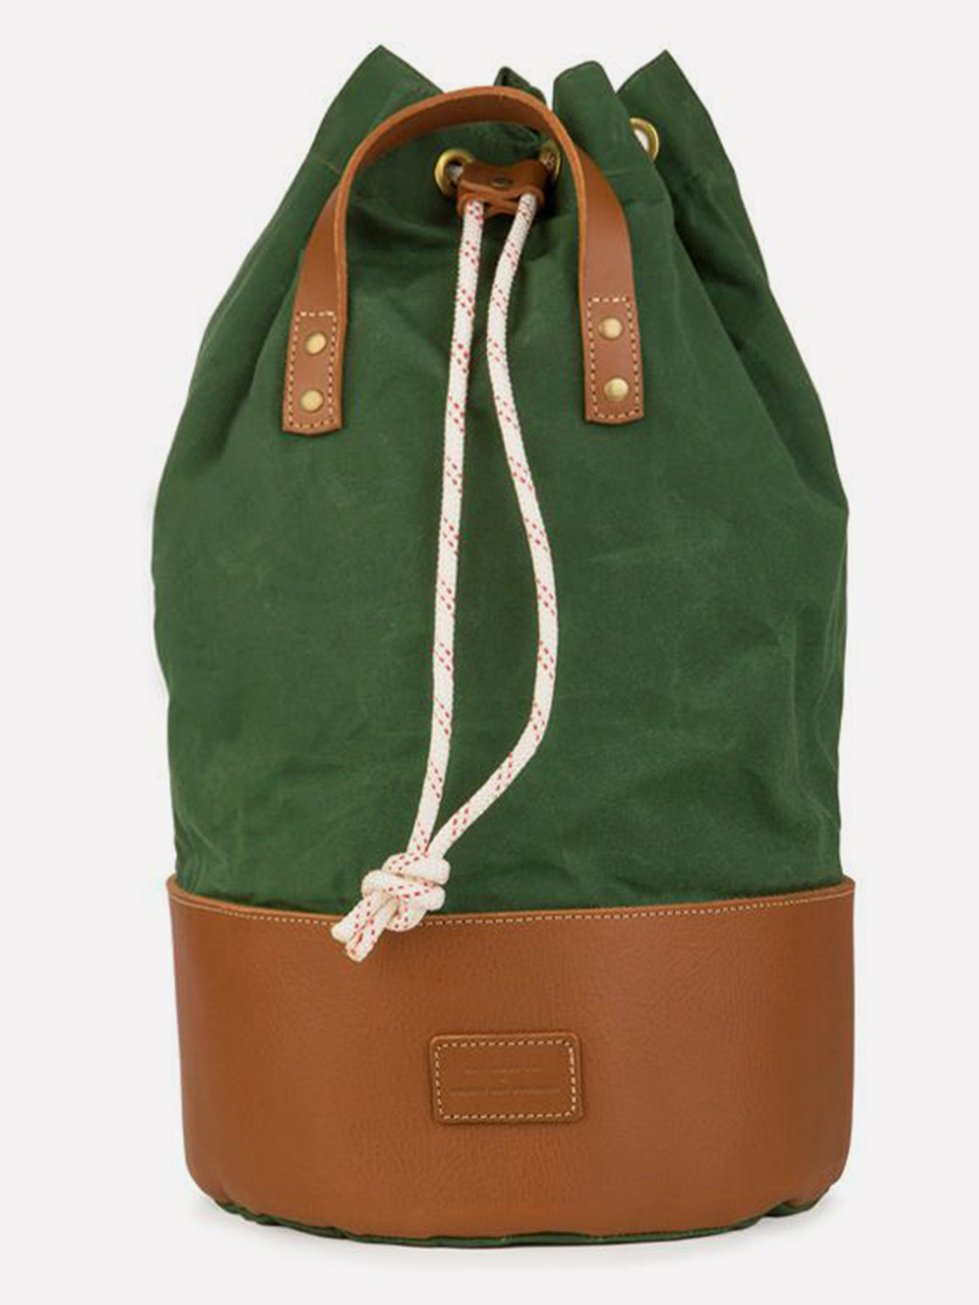 Foto do Duffel Bag Verde - Cutterman + Liberty Art Brothers